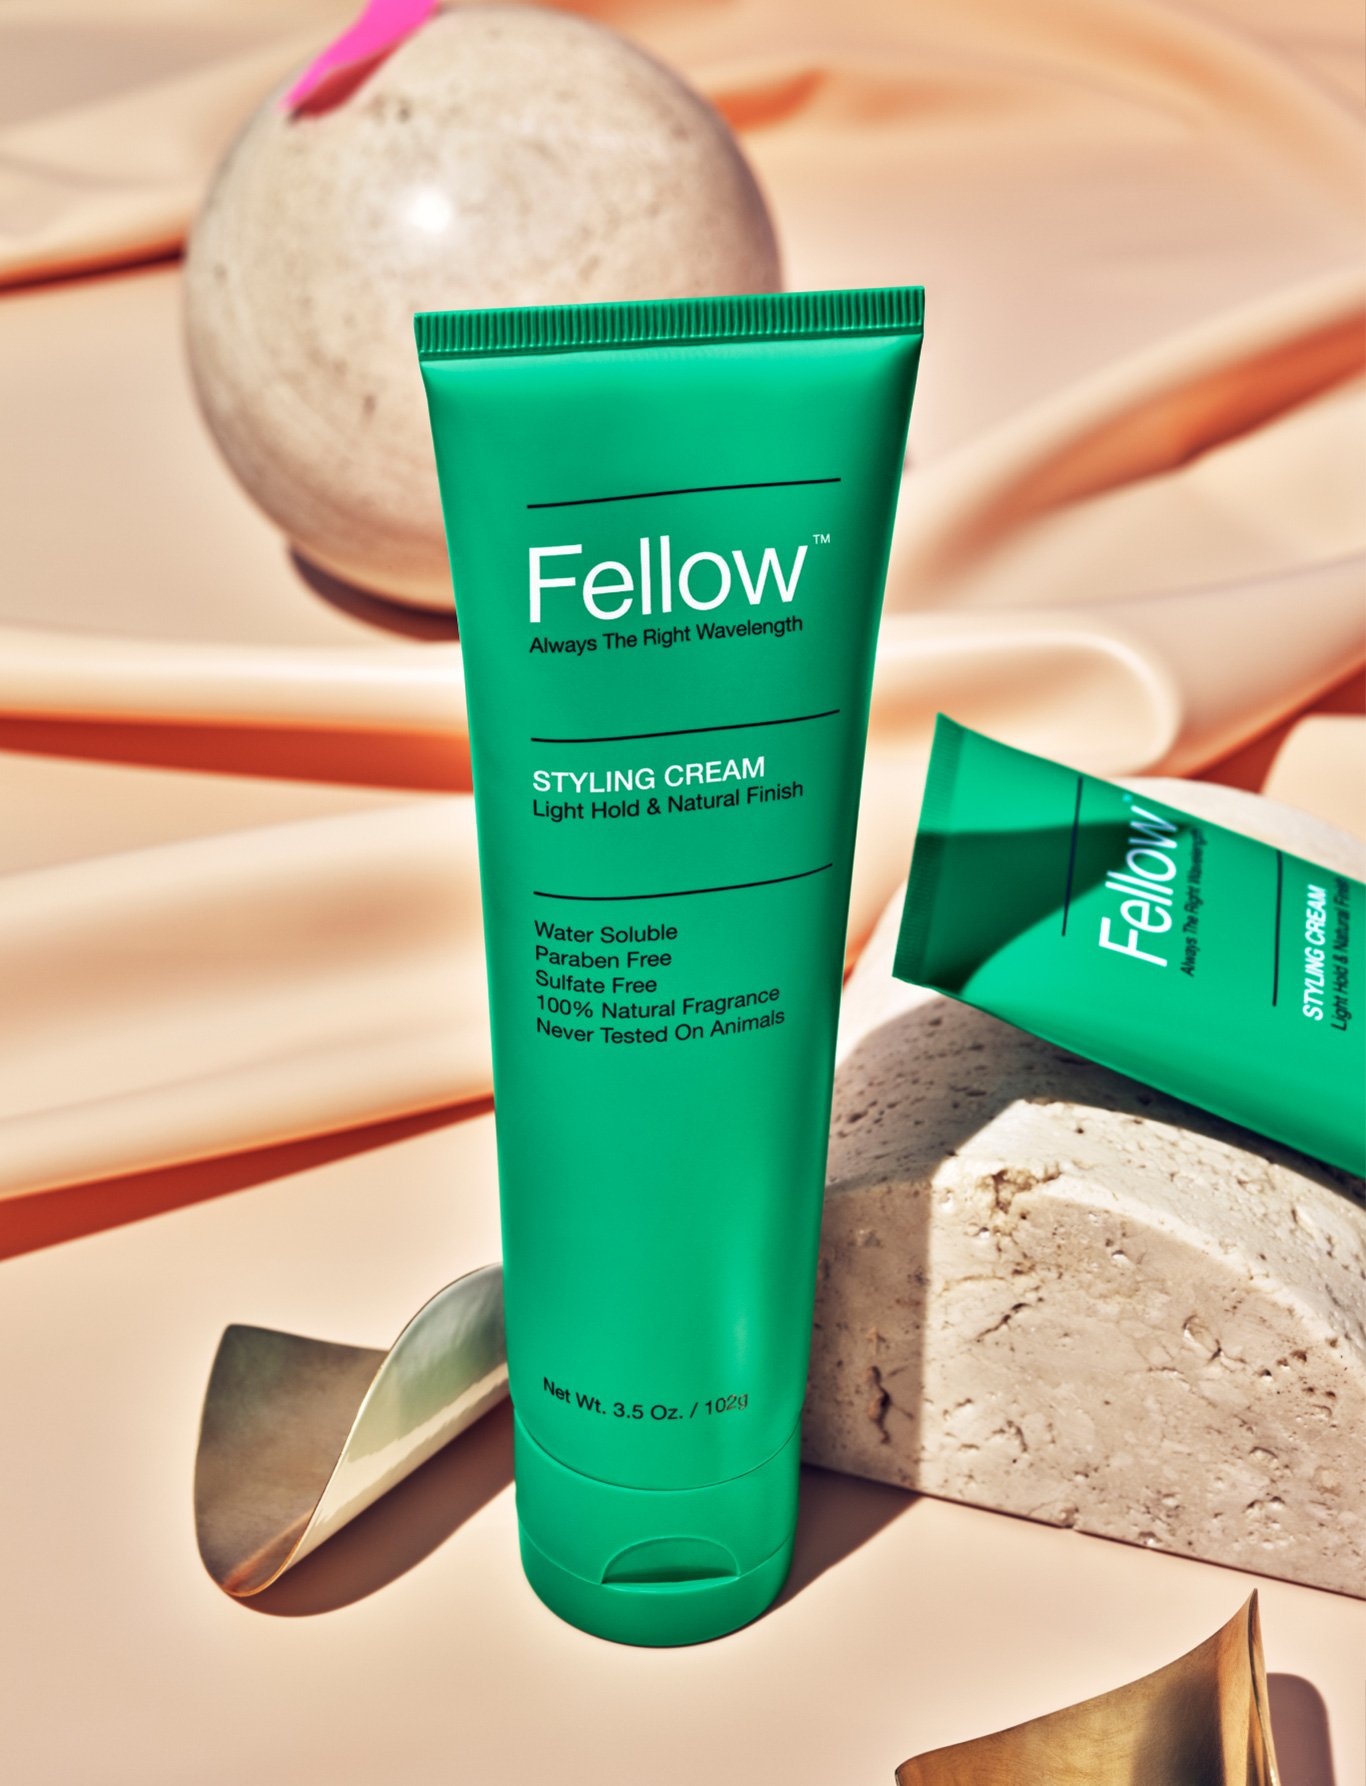 Fellow Signature Styling Cream product shot by Gran Cornett. Packaging and branding by RoAndCo